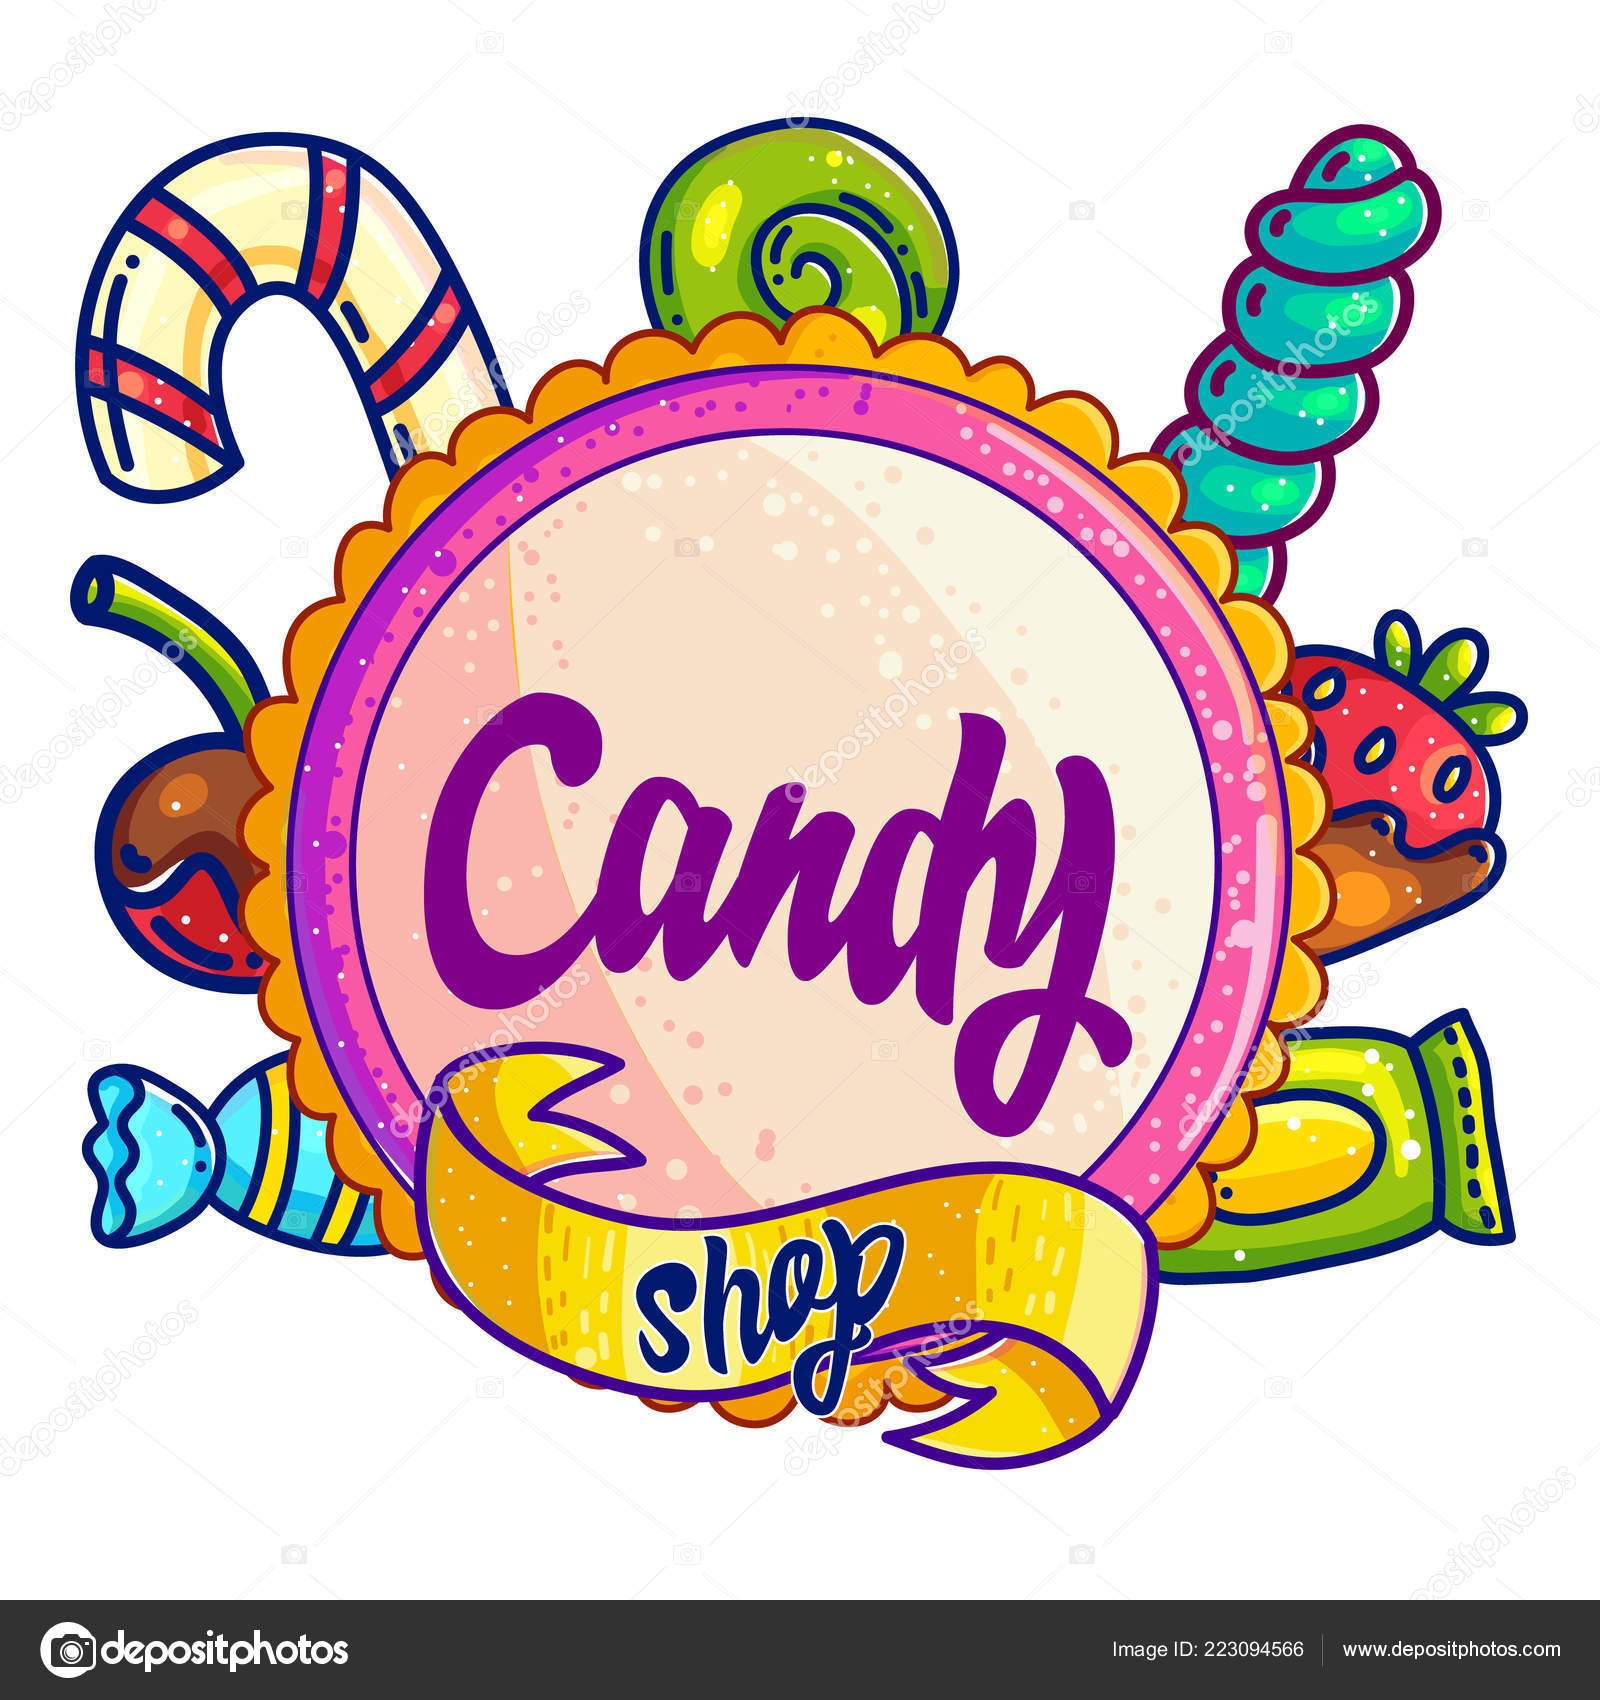 Clipart: sweet treats.